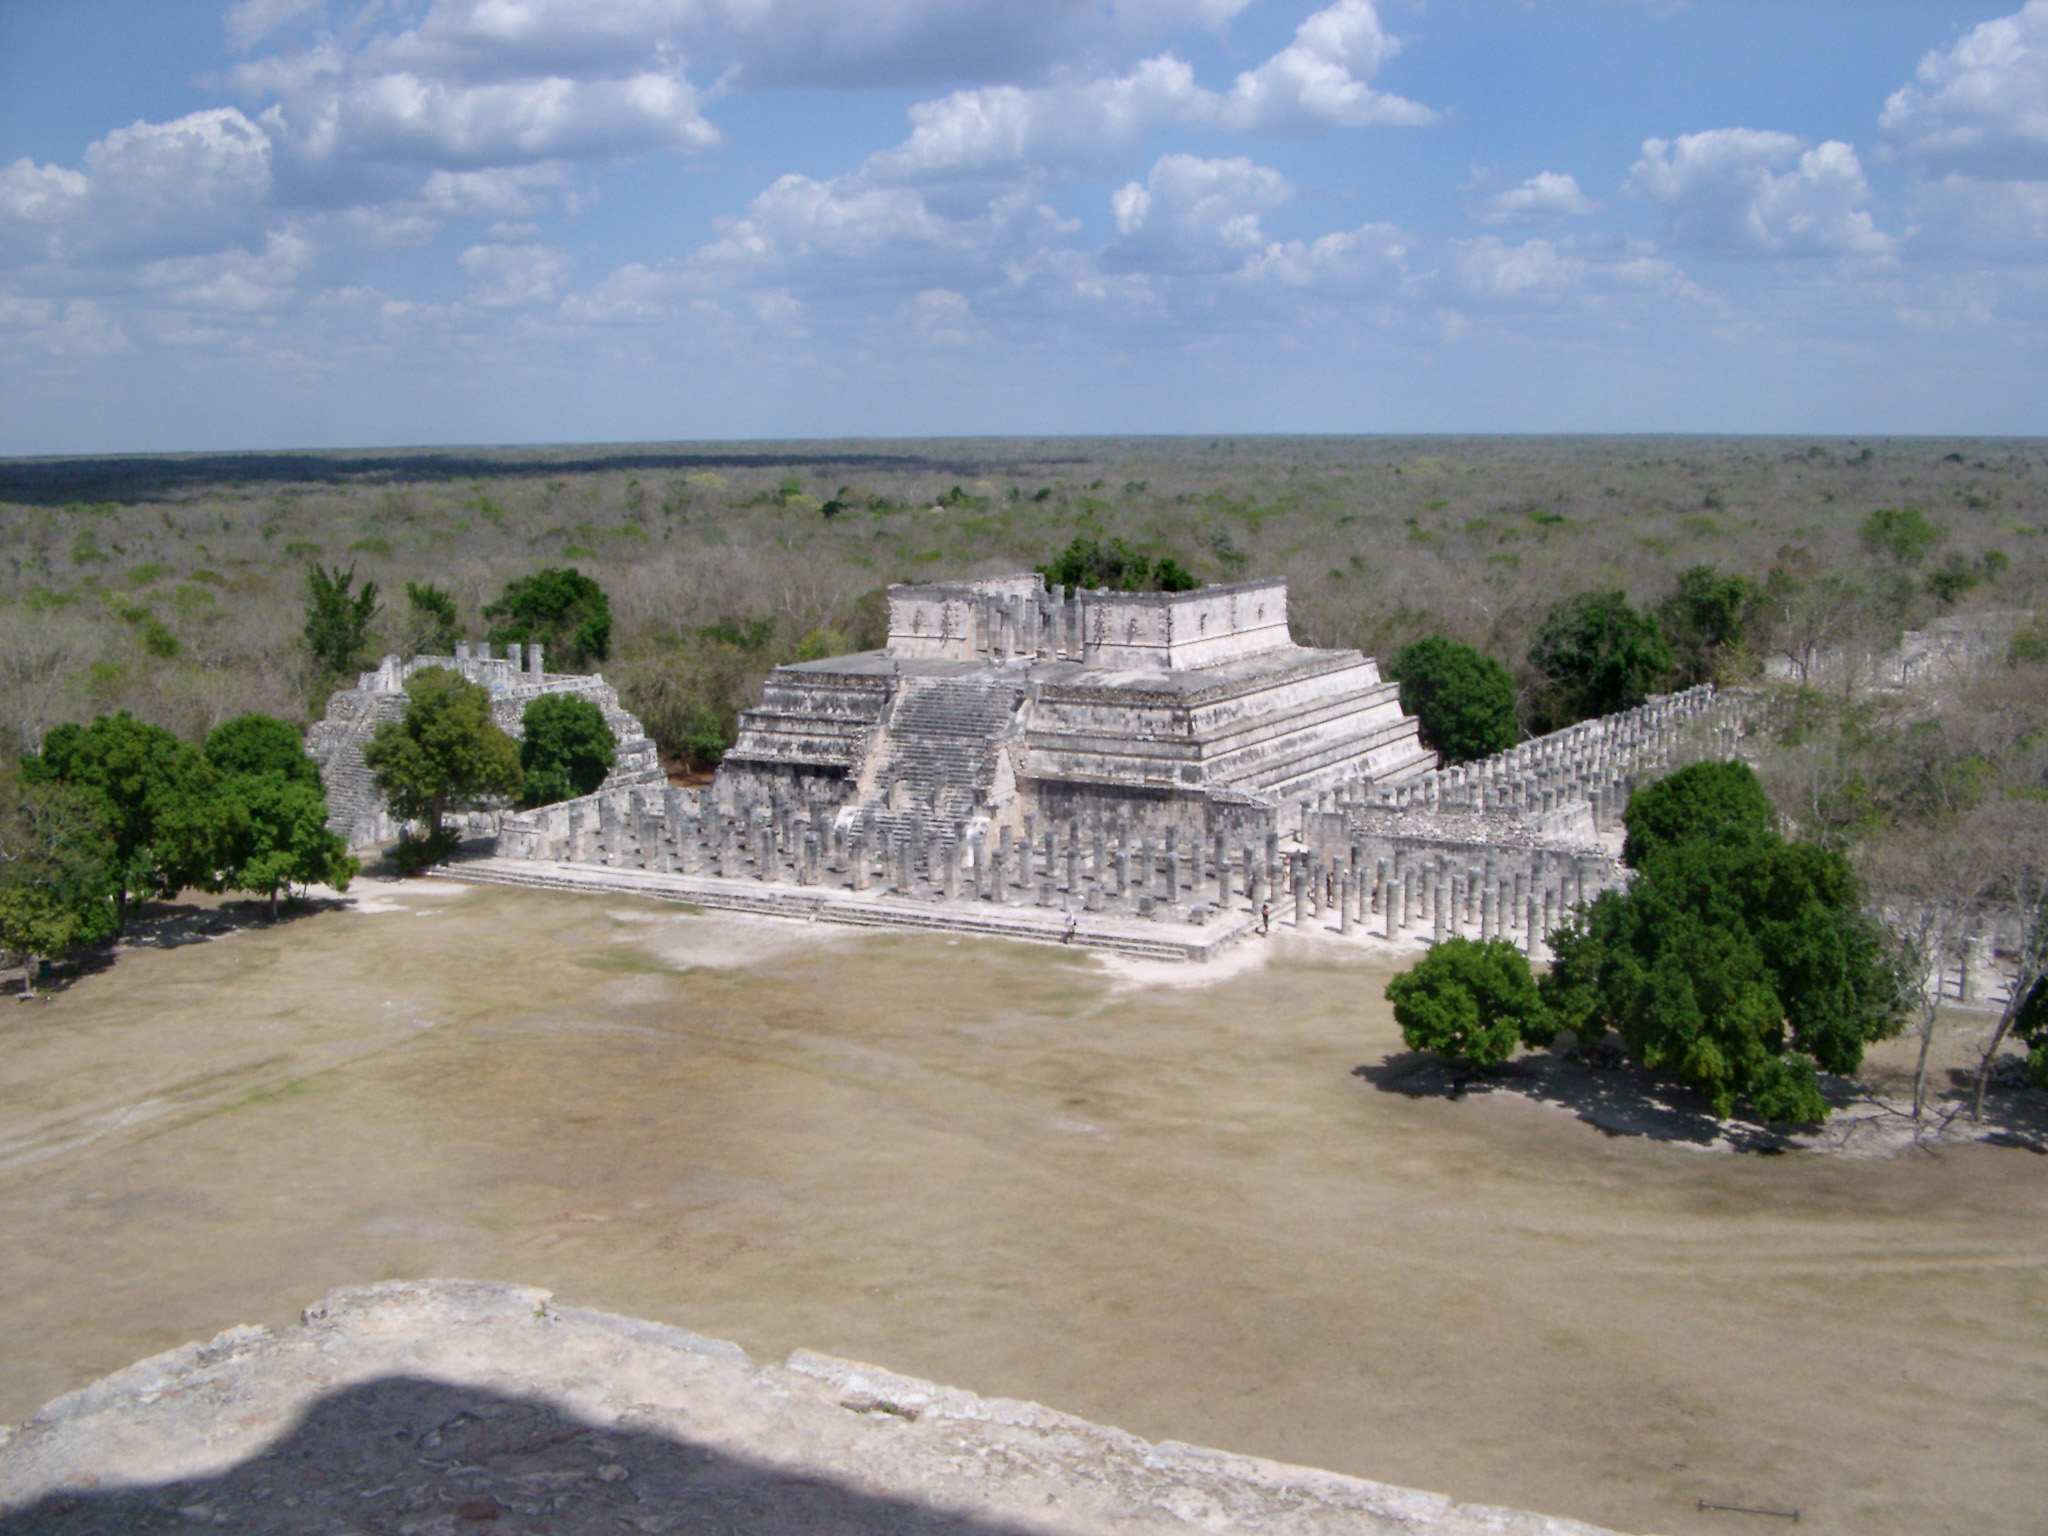 Temple of the Warriors, Chitzen Itza, Yucatan Peninsula, Mexico an important archaeological site with extensive Mayan ruins